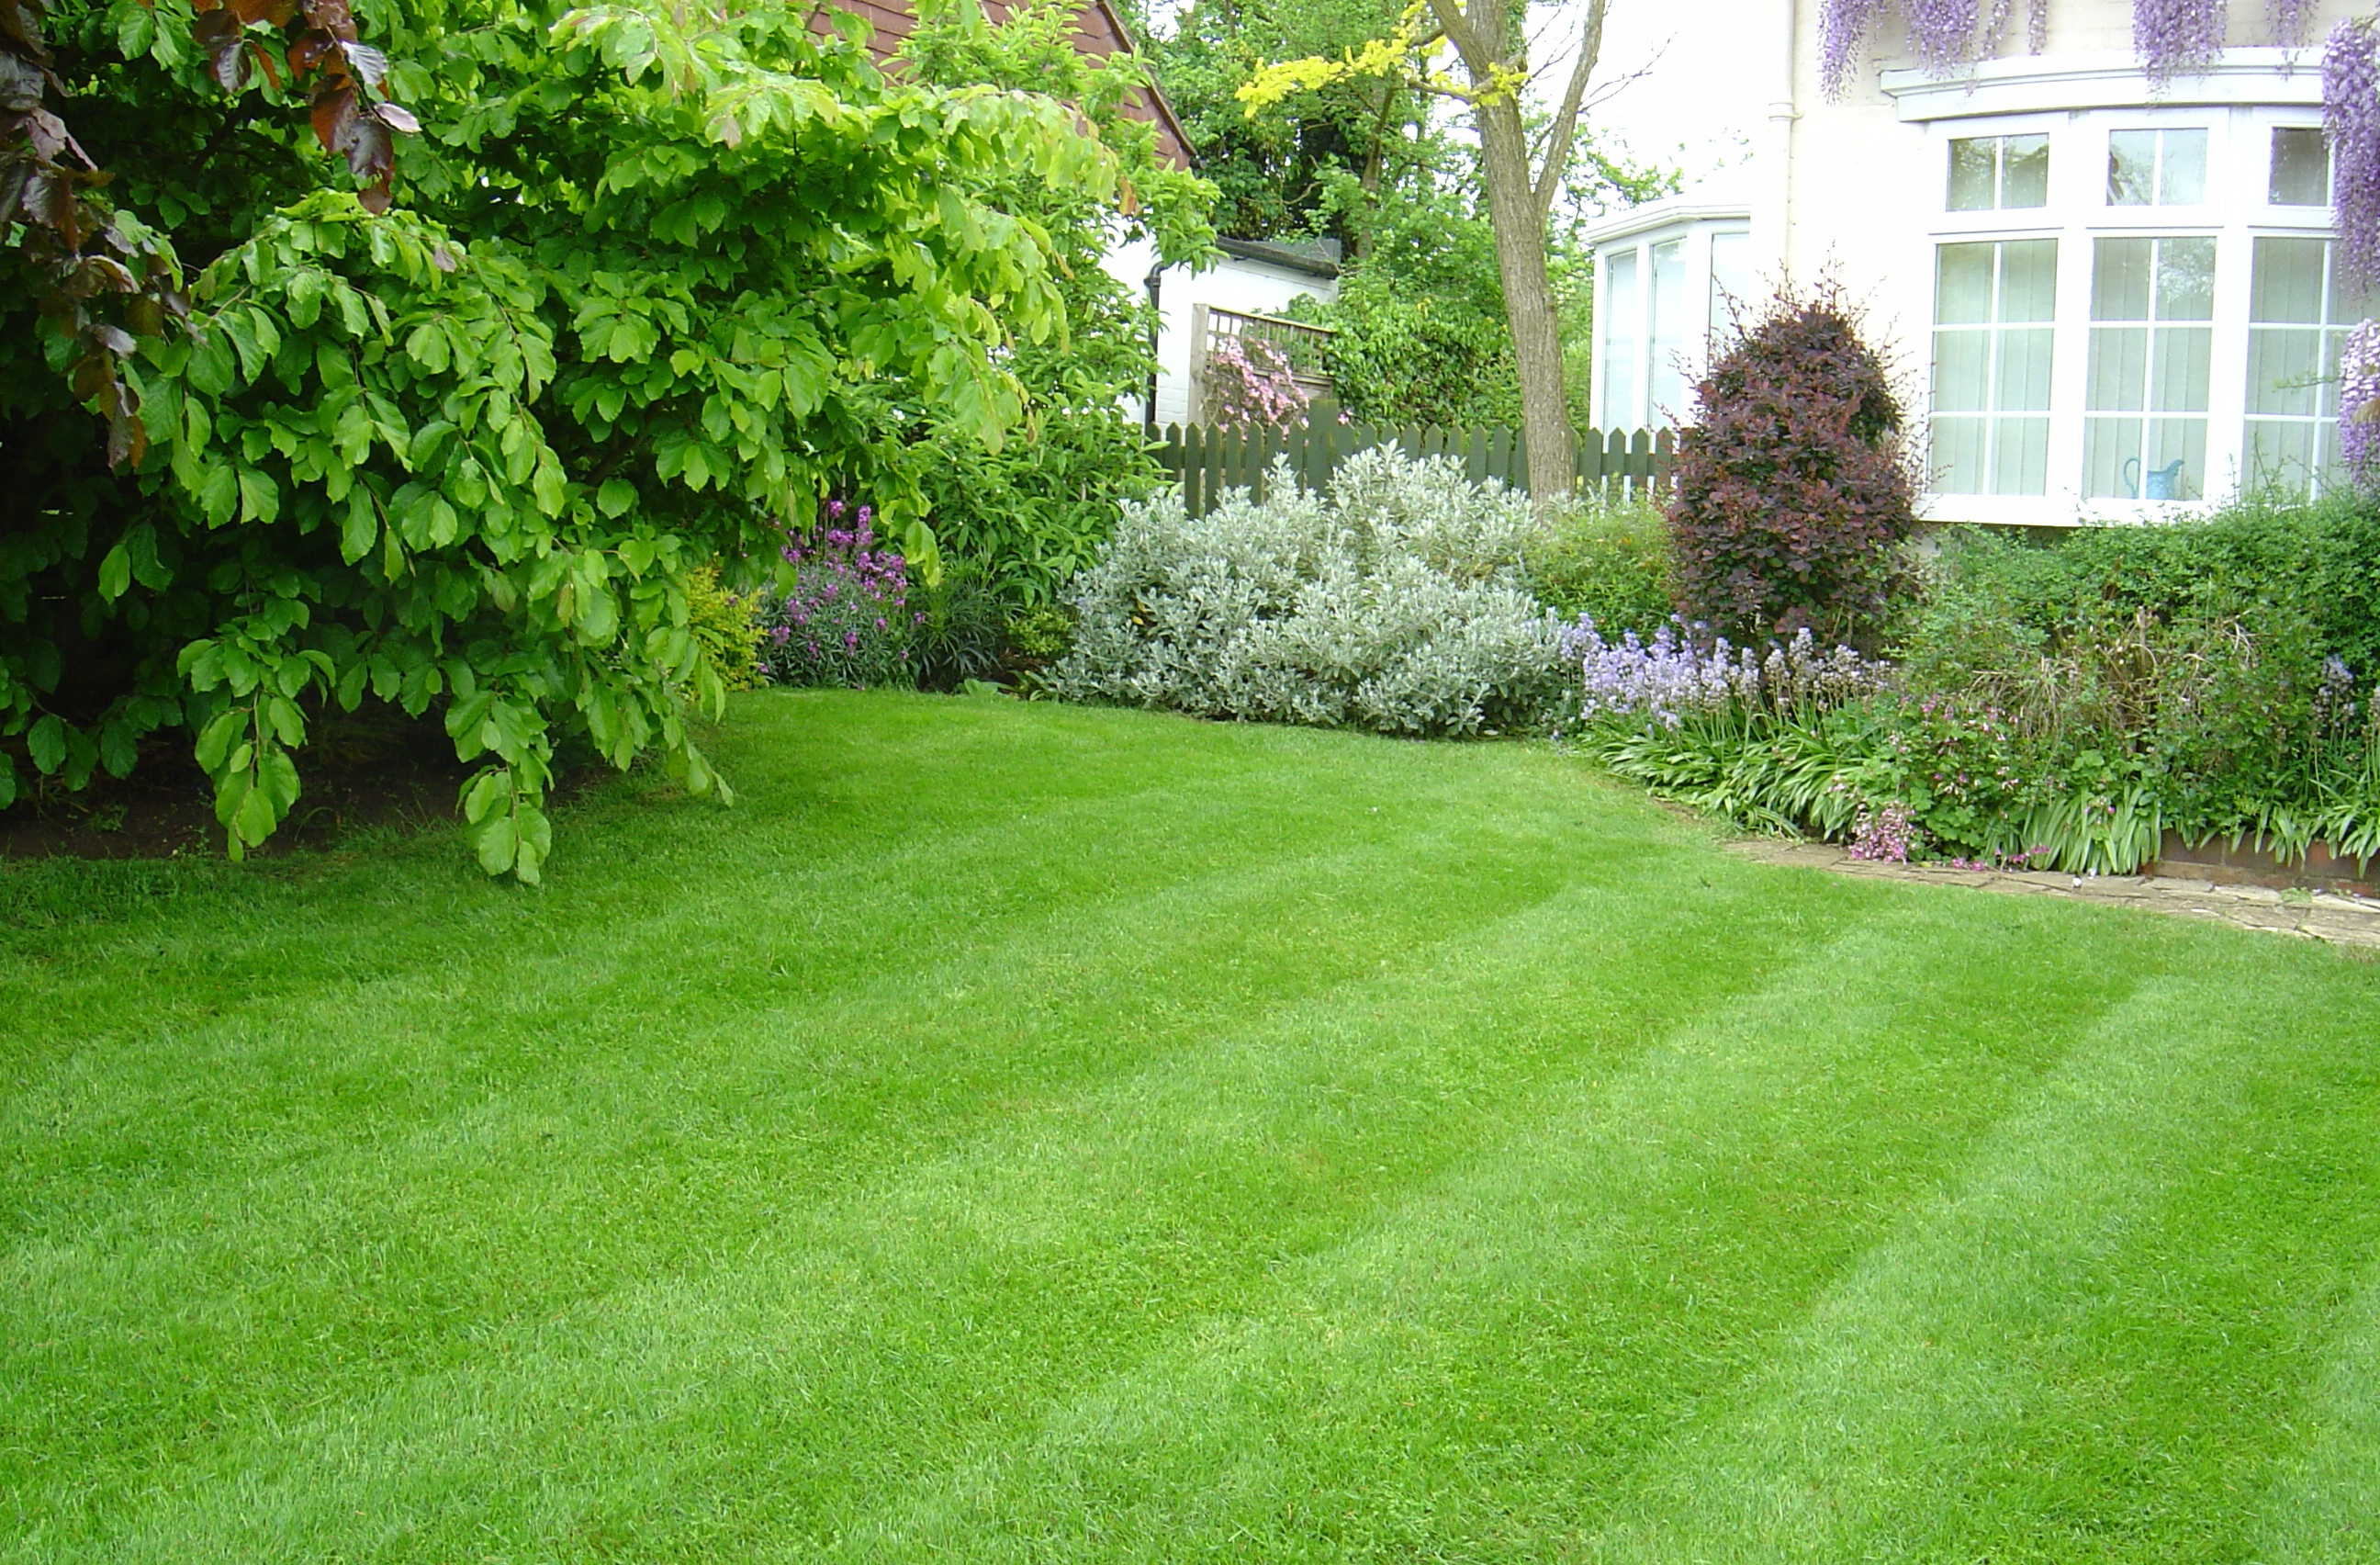 Lawn care vertopia gardens for Garden maintenance